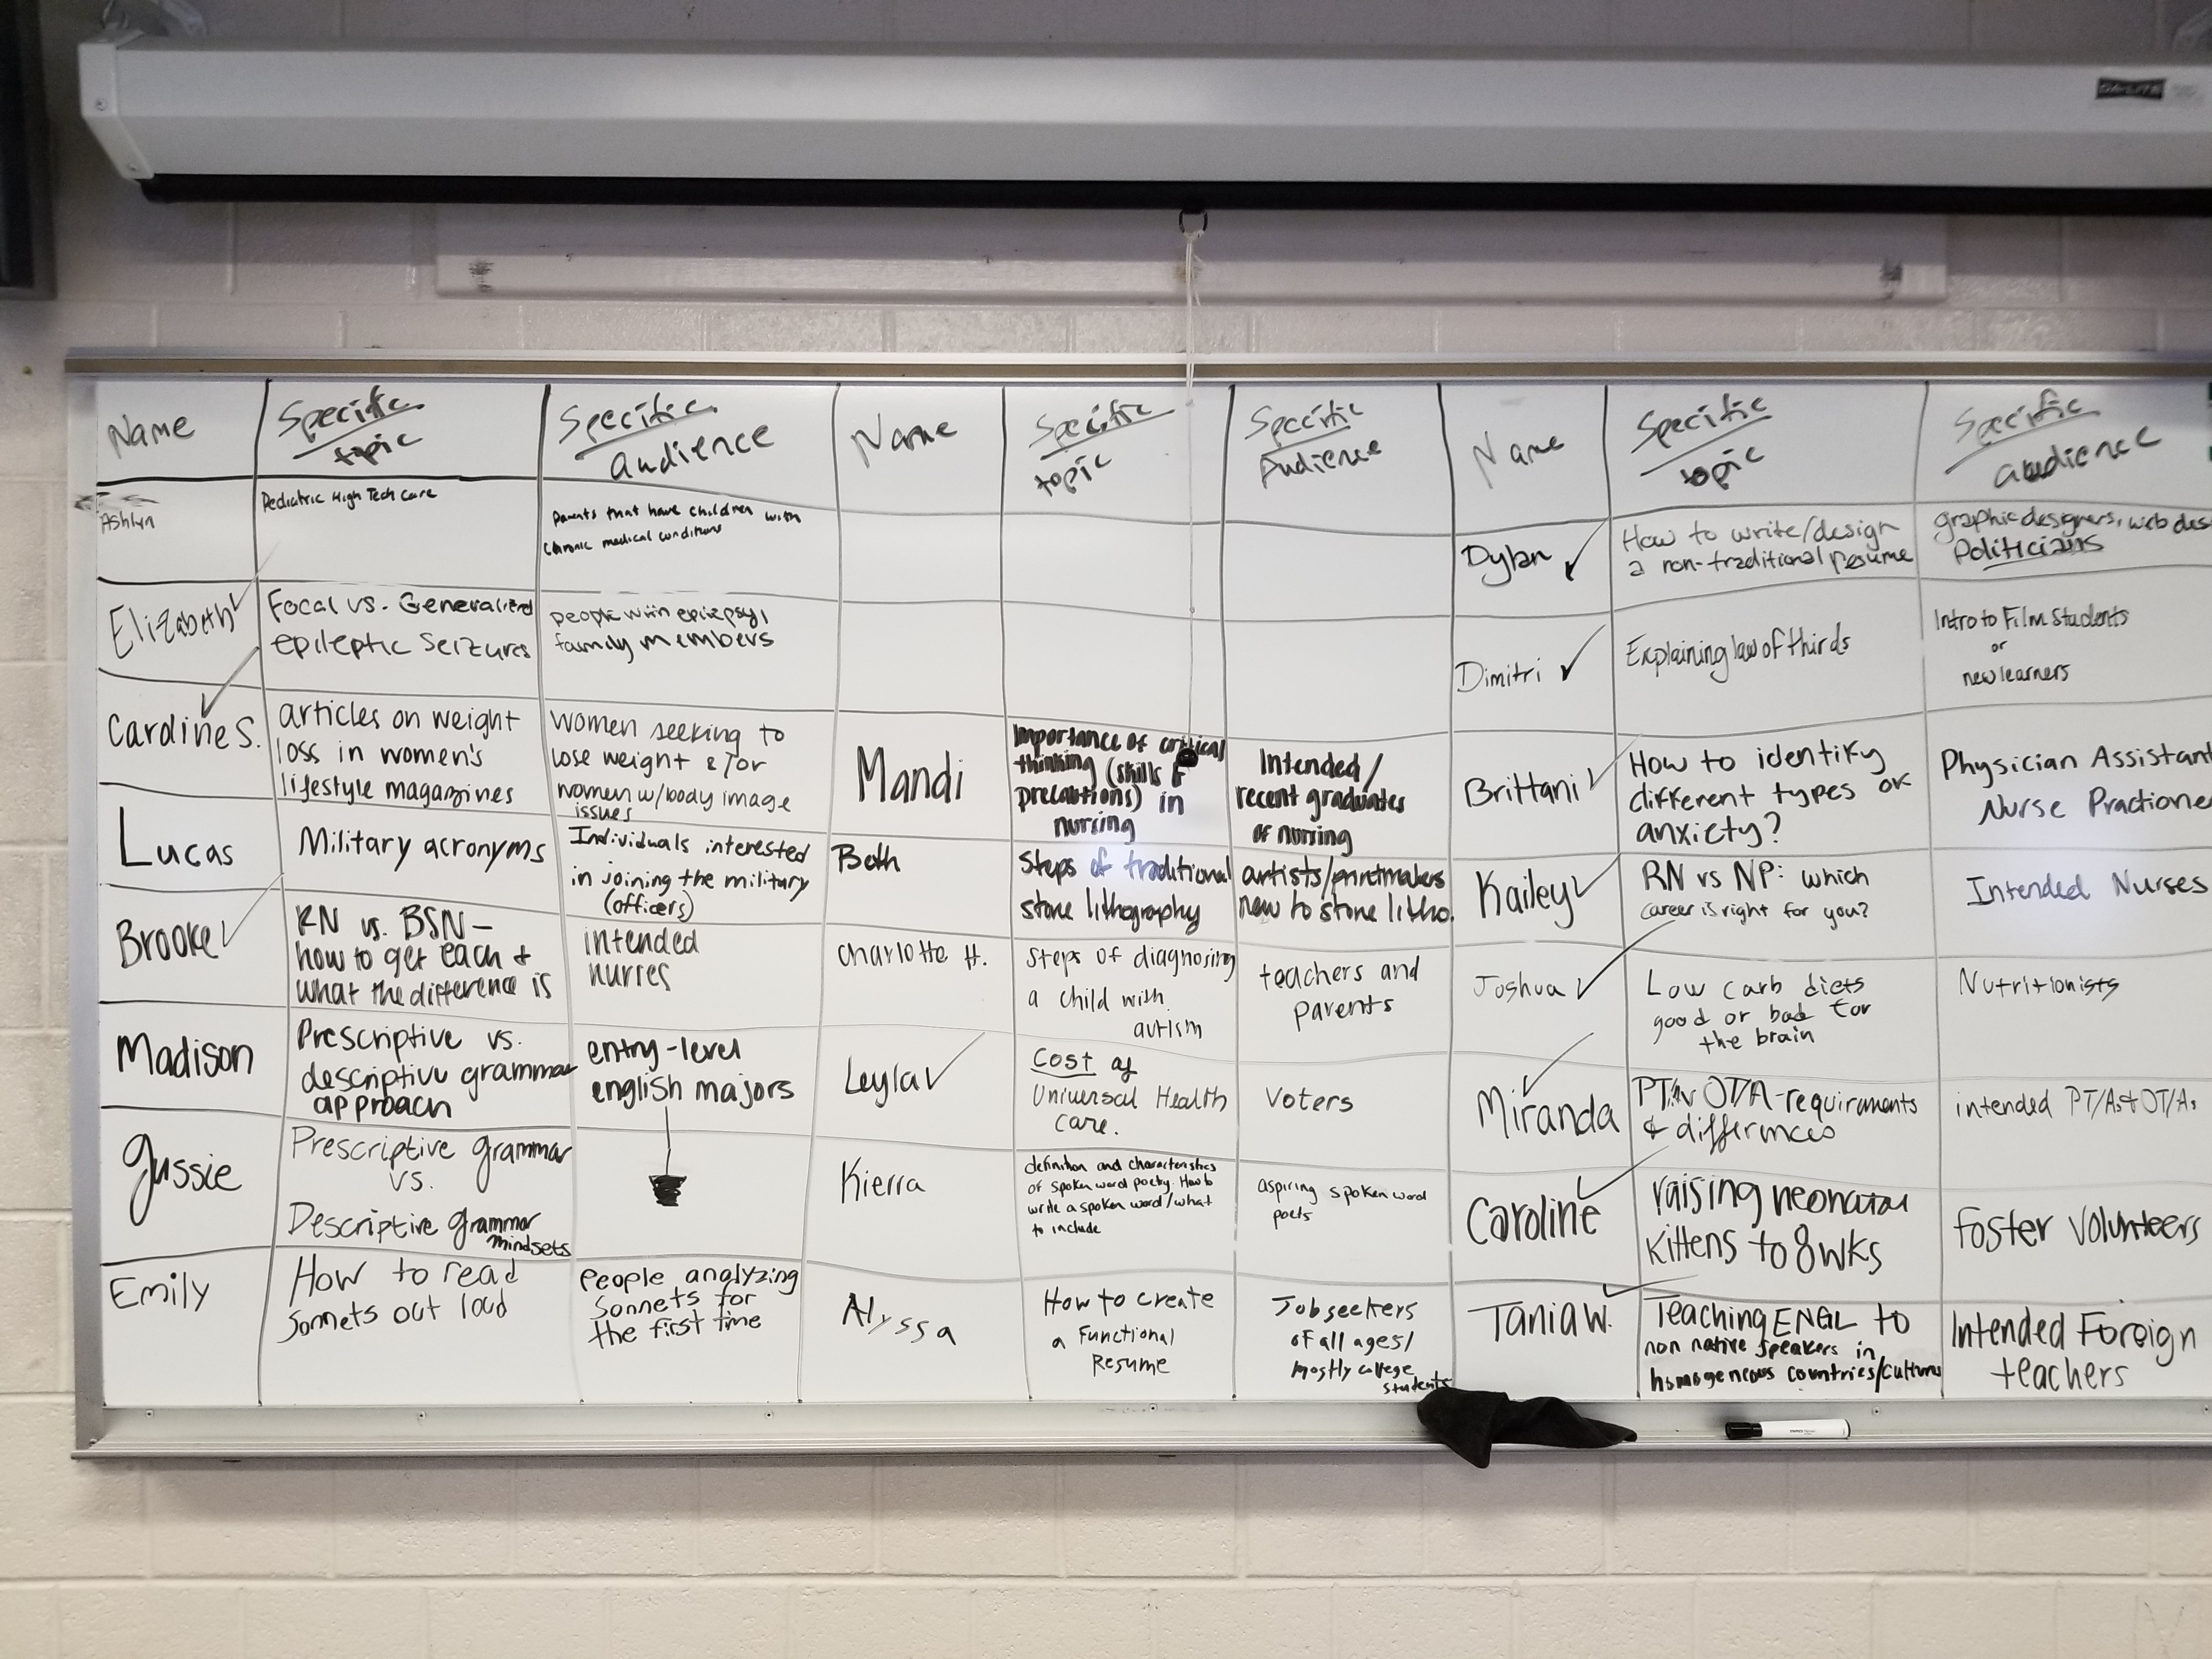 A photo of notes on the class board for 8/27/18